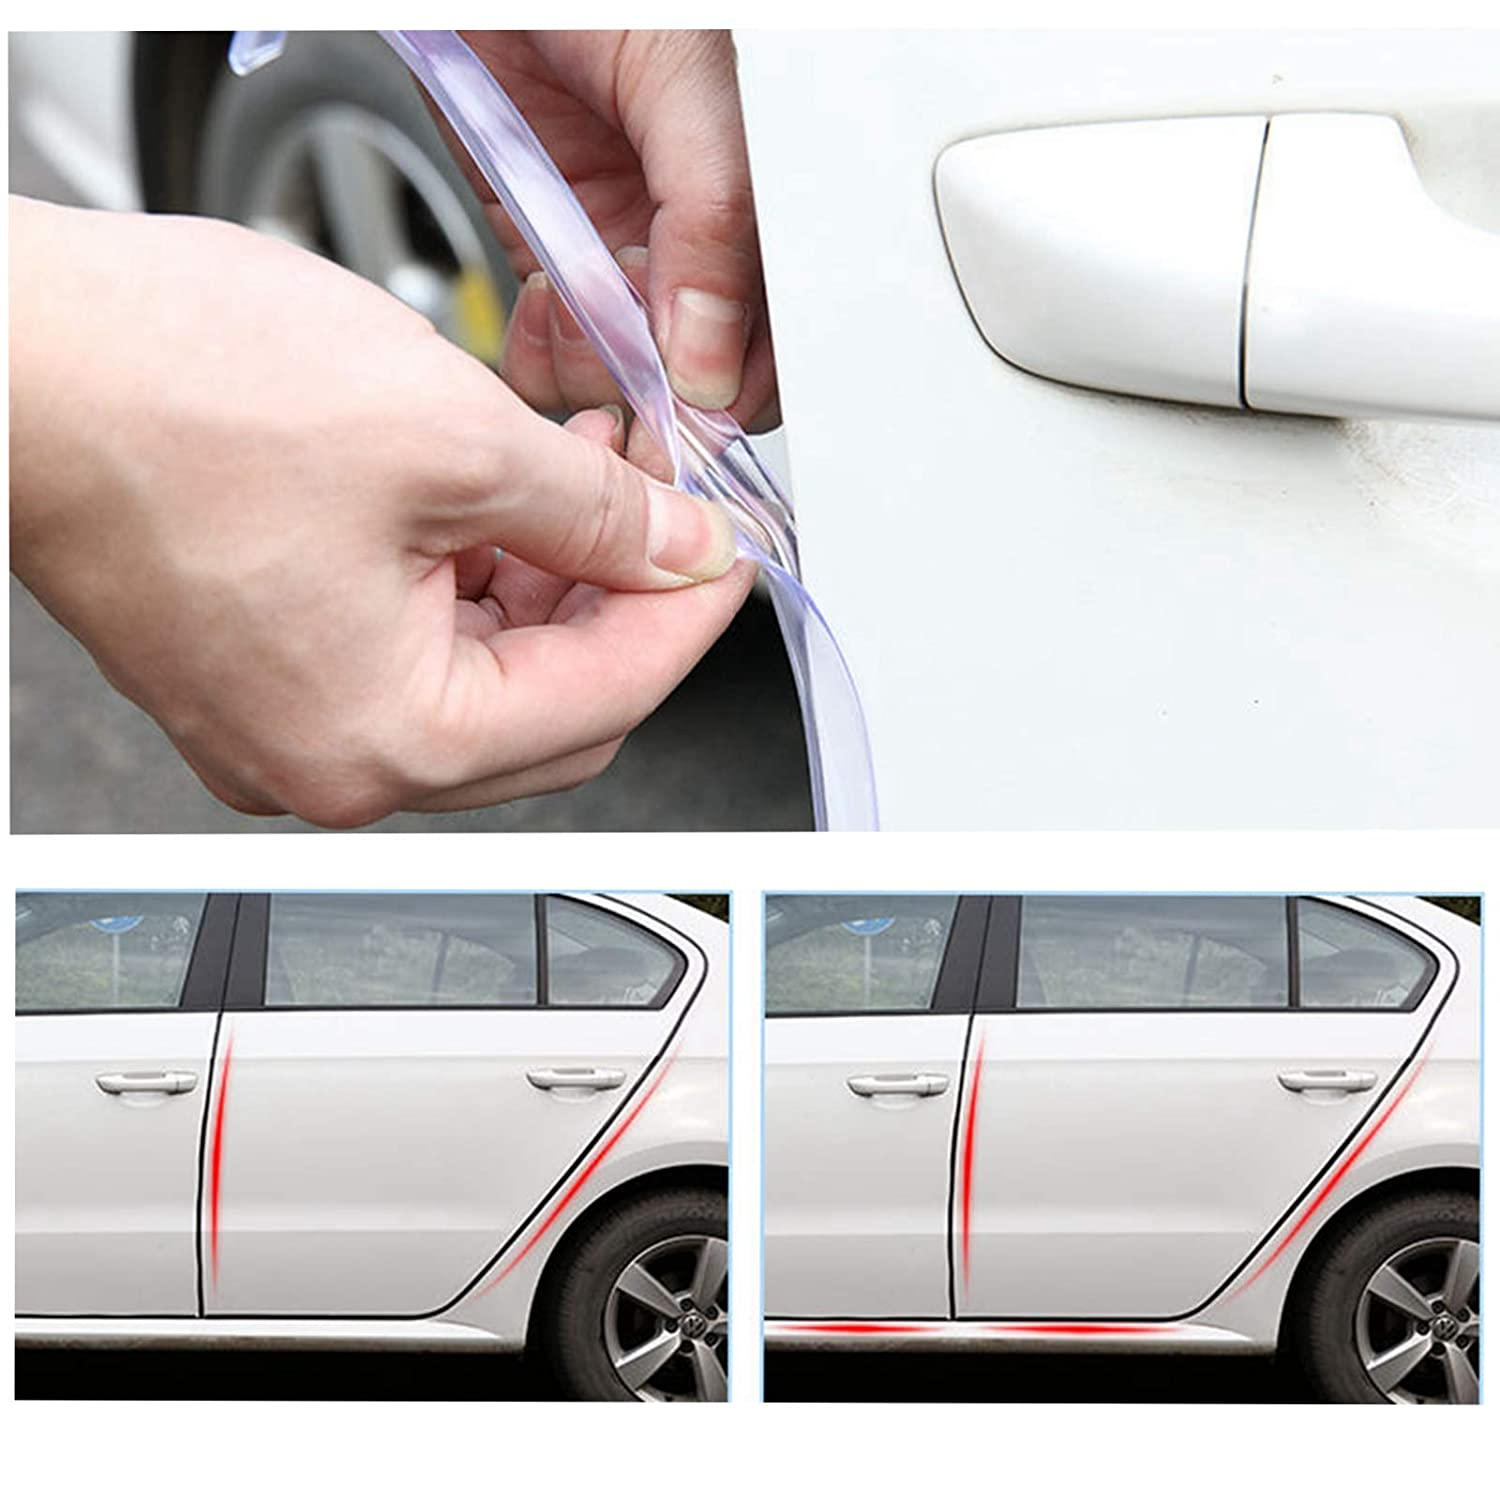 16ft White 5M Car Edge Guard Trim Rubber Seal Protector Guard Strip for Car Door Metal Edge Seal Protection